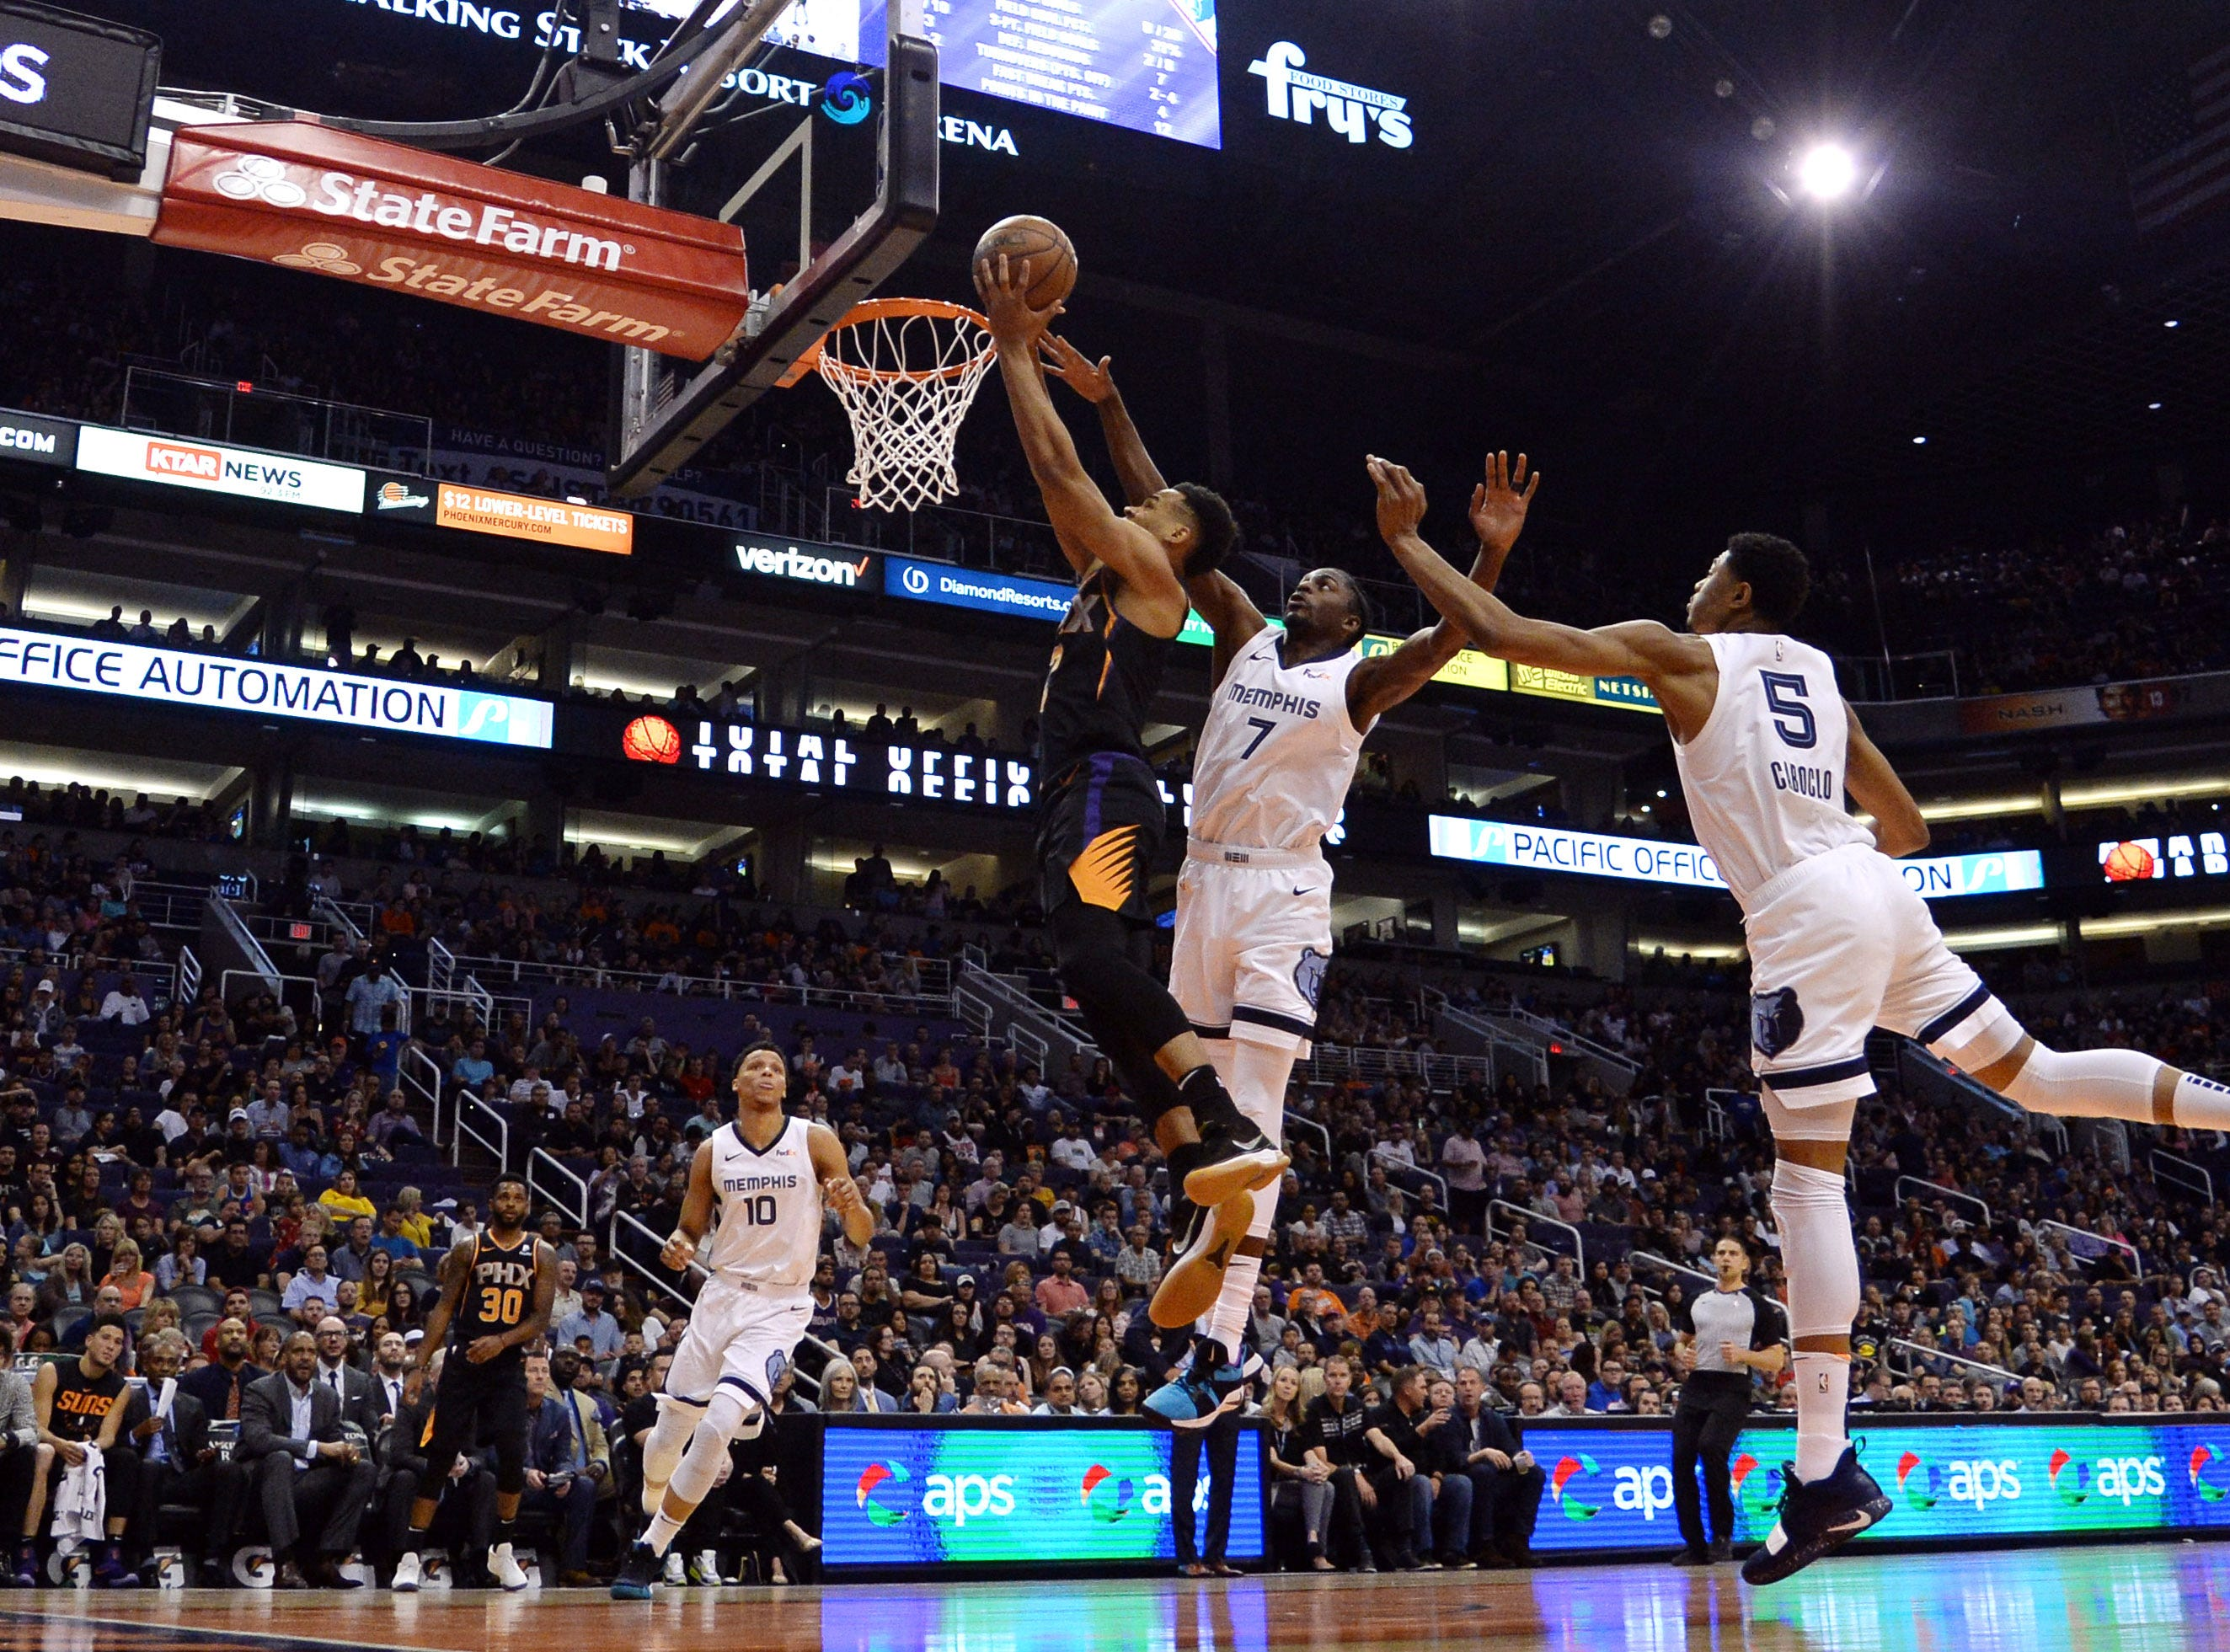 Mar 30, 2019; Phoenix, AZ, USA; Phoenix Suns guard Elie Okobo (2) goes up for a layup over Memphis Grizzlies forward Justin Holiday (7) and Memphis Grizzlies forward Bruno Caboclo (5) during the first half at Talking Stick Resort Arena. Mandatory Credit: Joe Camporeale-USA TODAY Sports